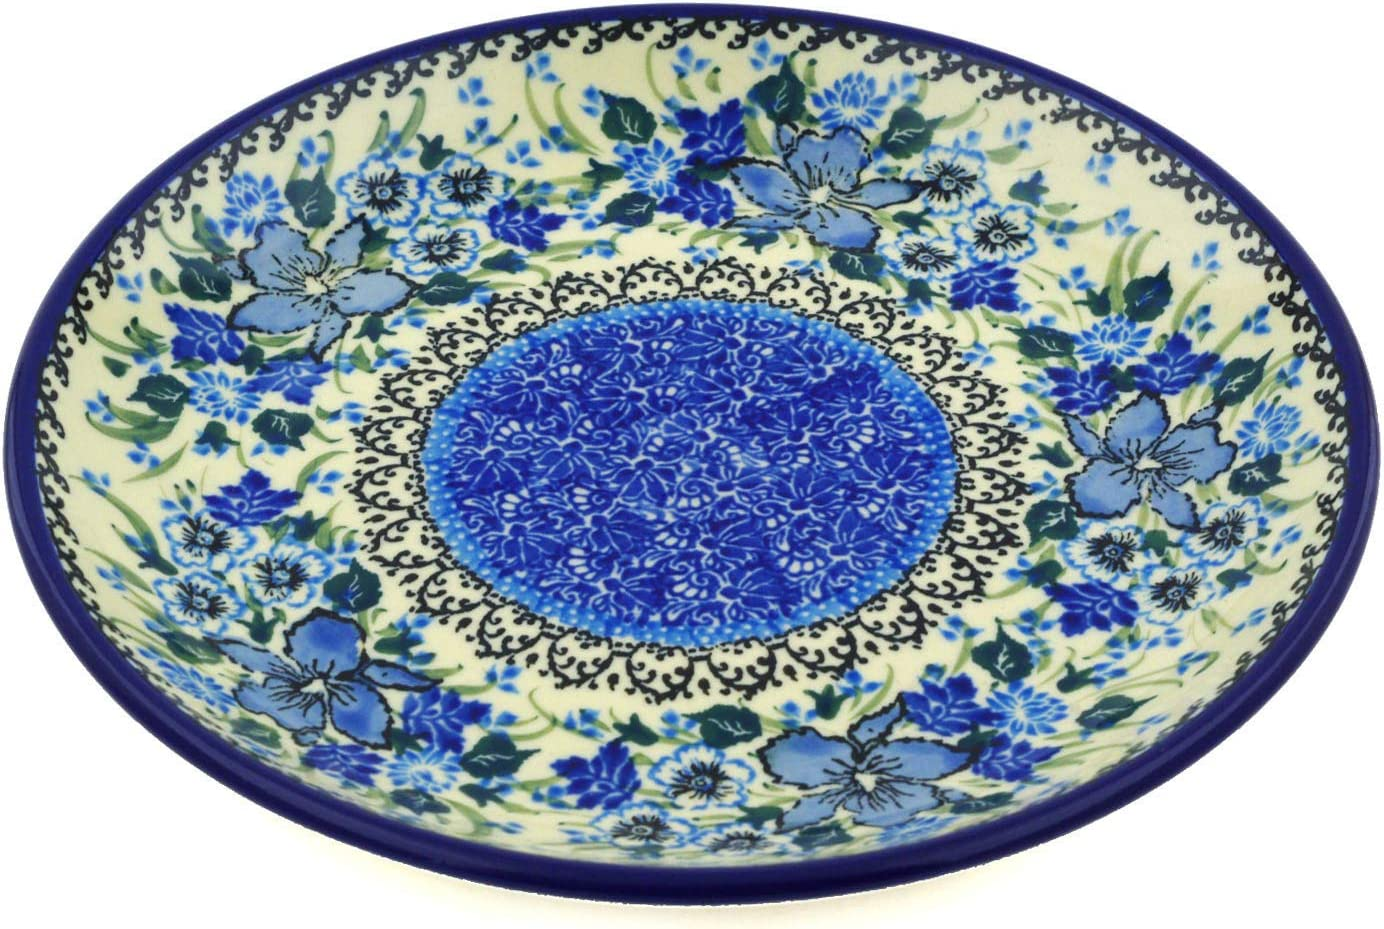 Outlet SALE Polmedia Polish Pottery 8-inch Stoneware Free shipping H6418E Paint Plate Hand